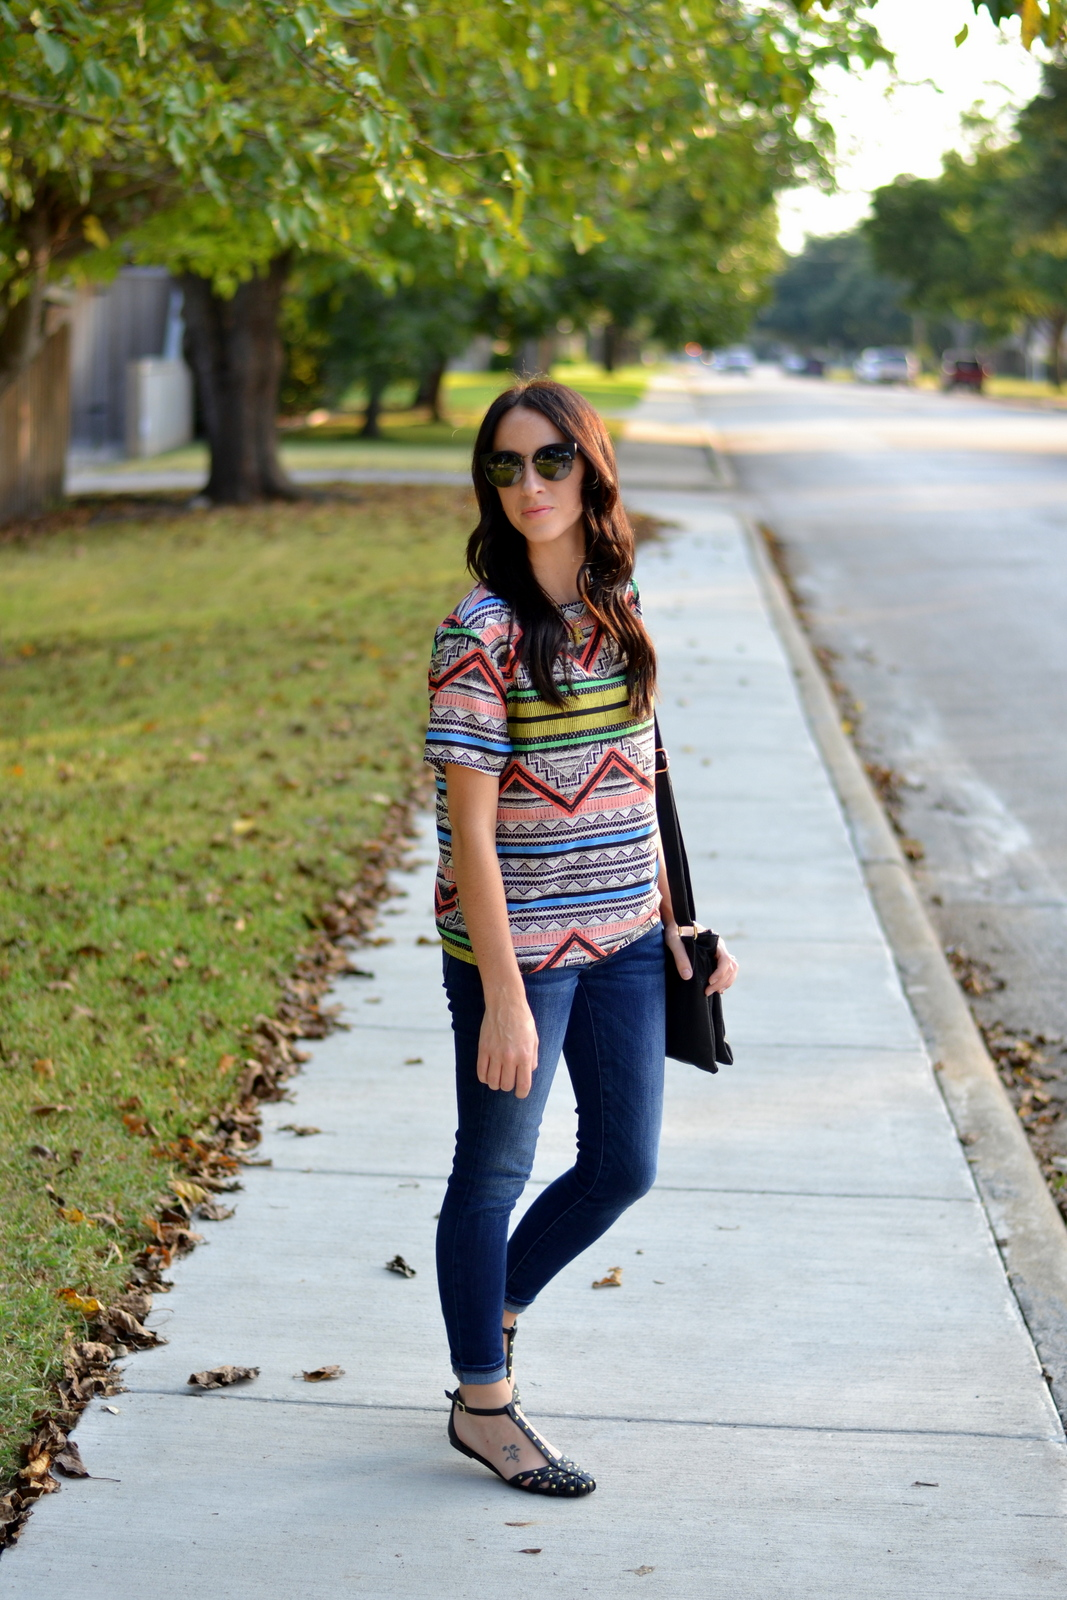 Aztec Top, Skinny Jeans, Cat Eye Sunglasses, Studded Flats